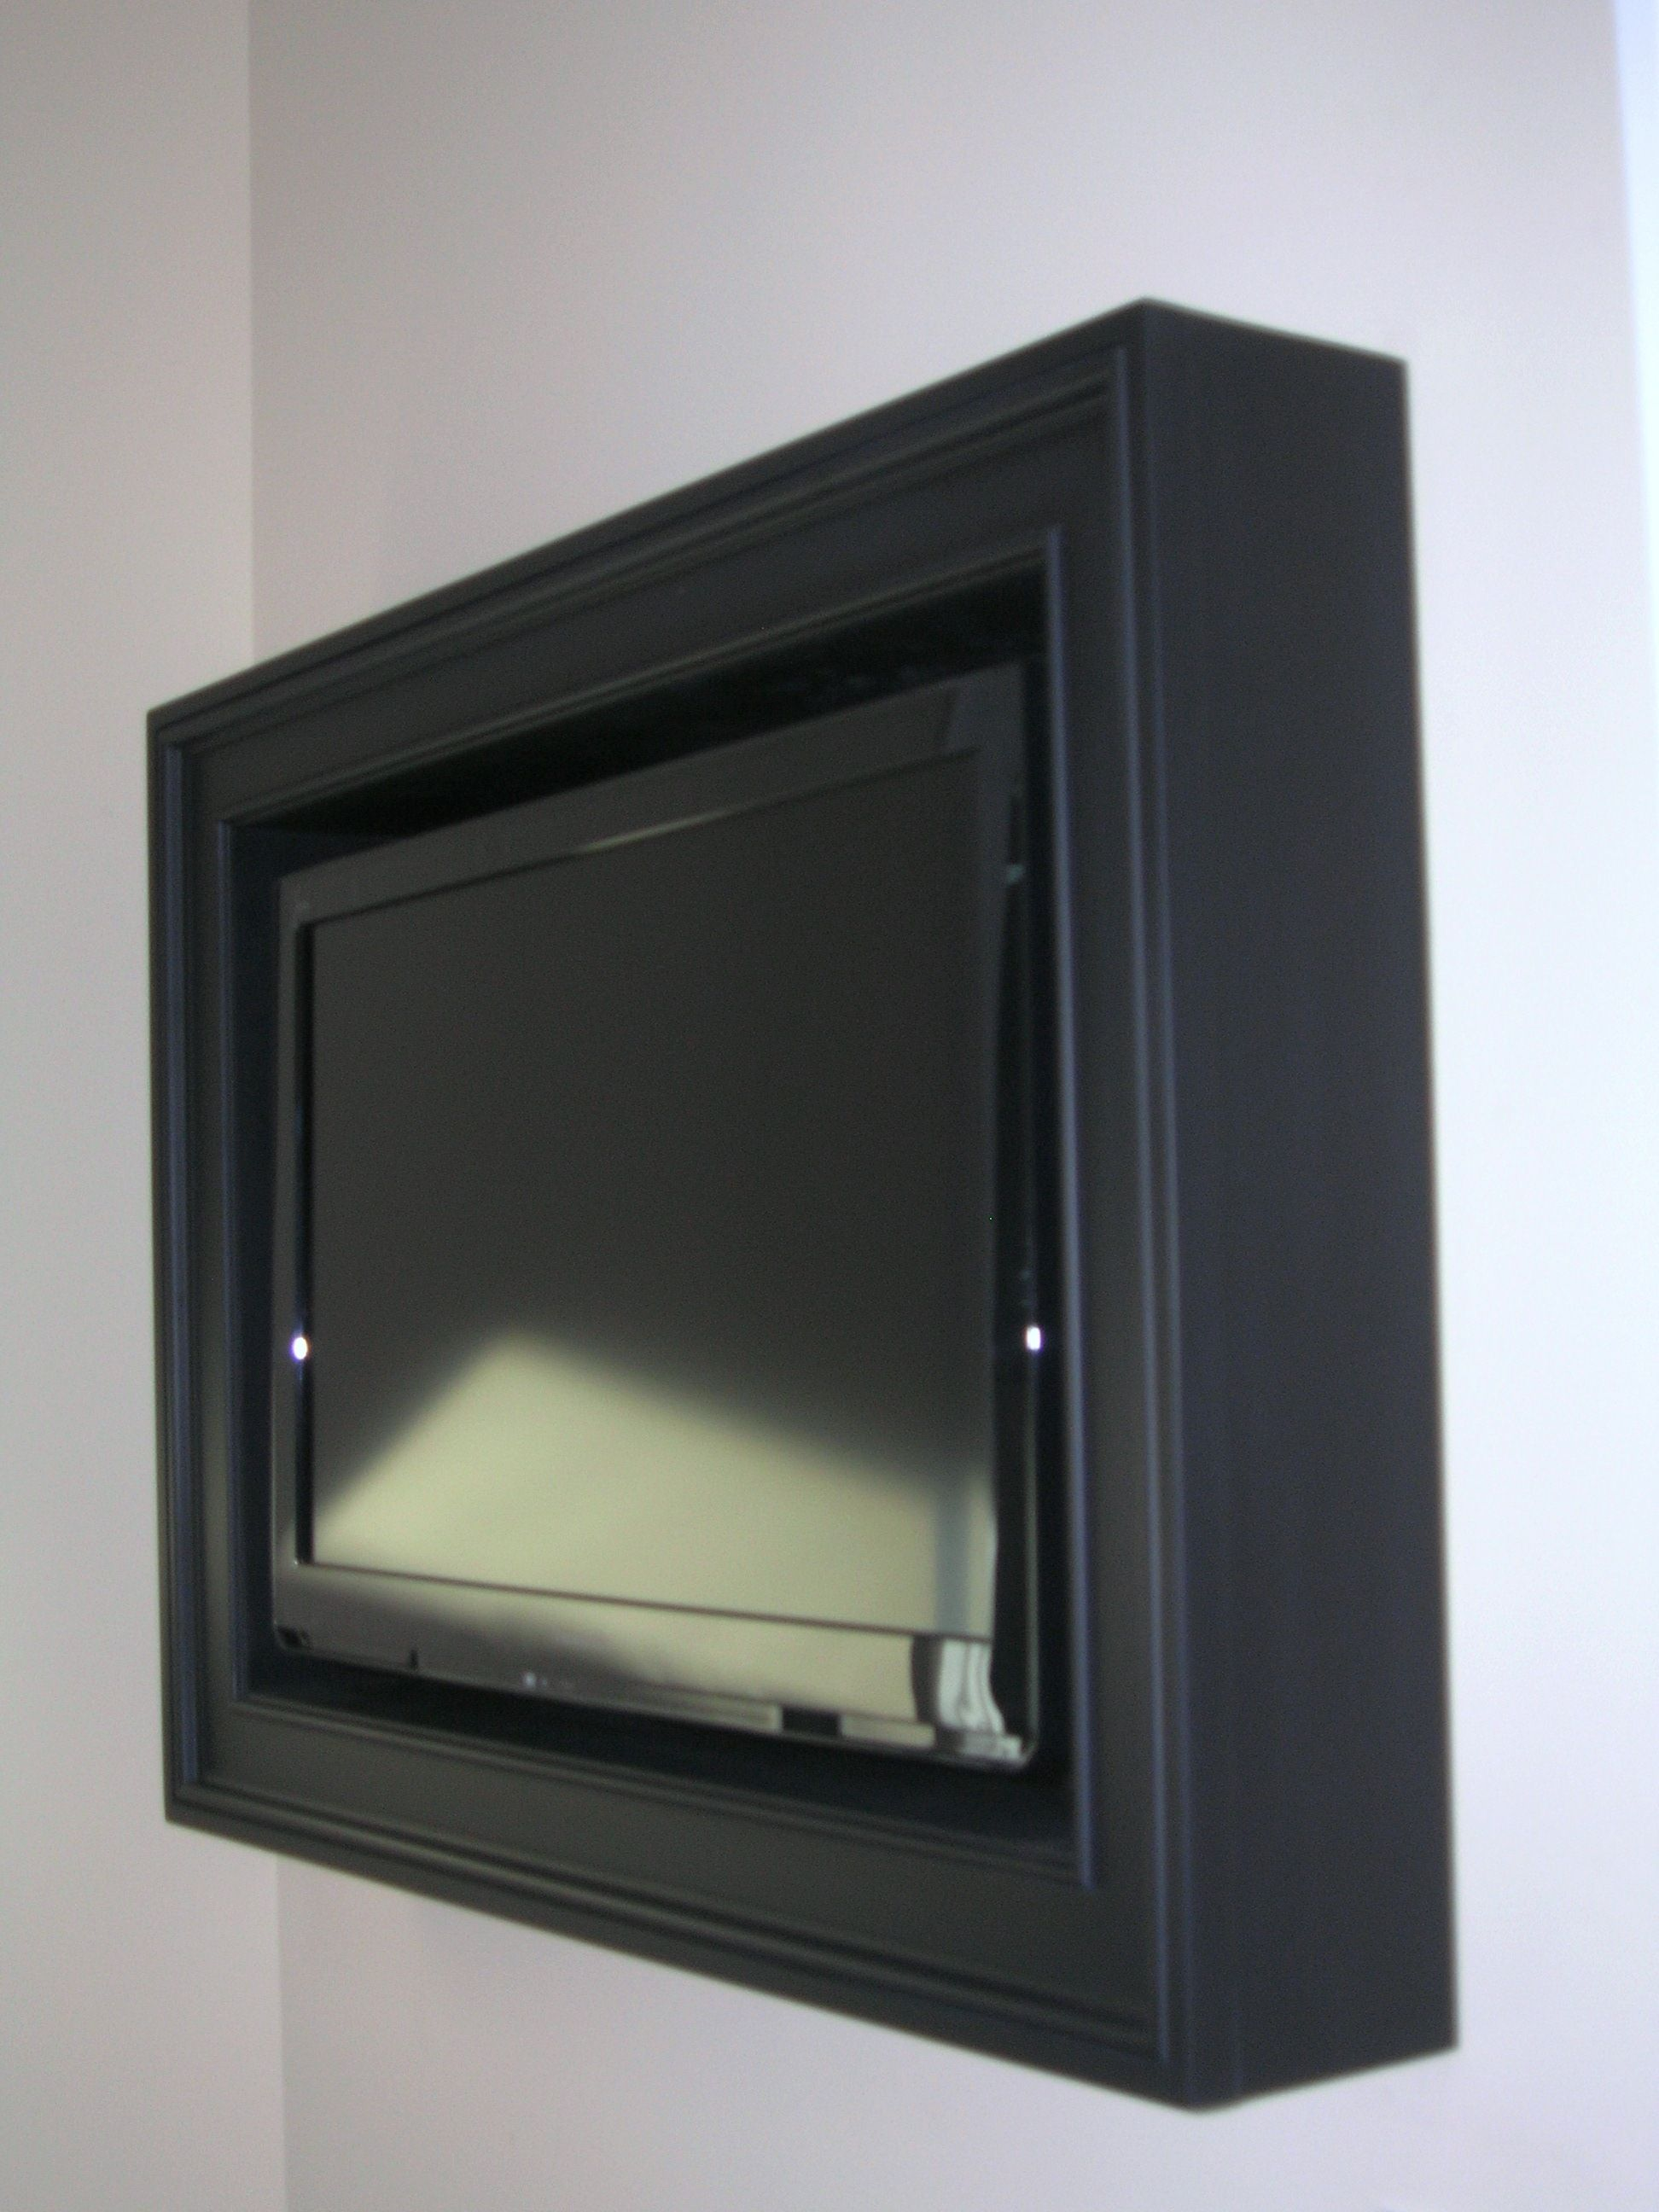 Custom Tv Frames Add Warmth To Any Room Repin This Frameswall Mounted